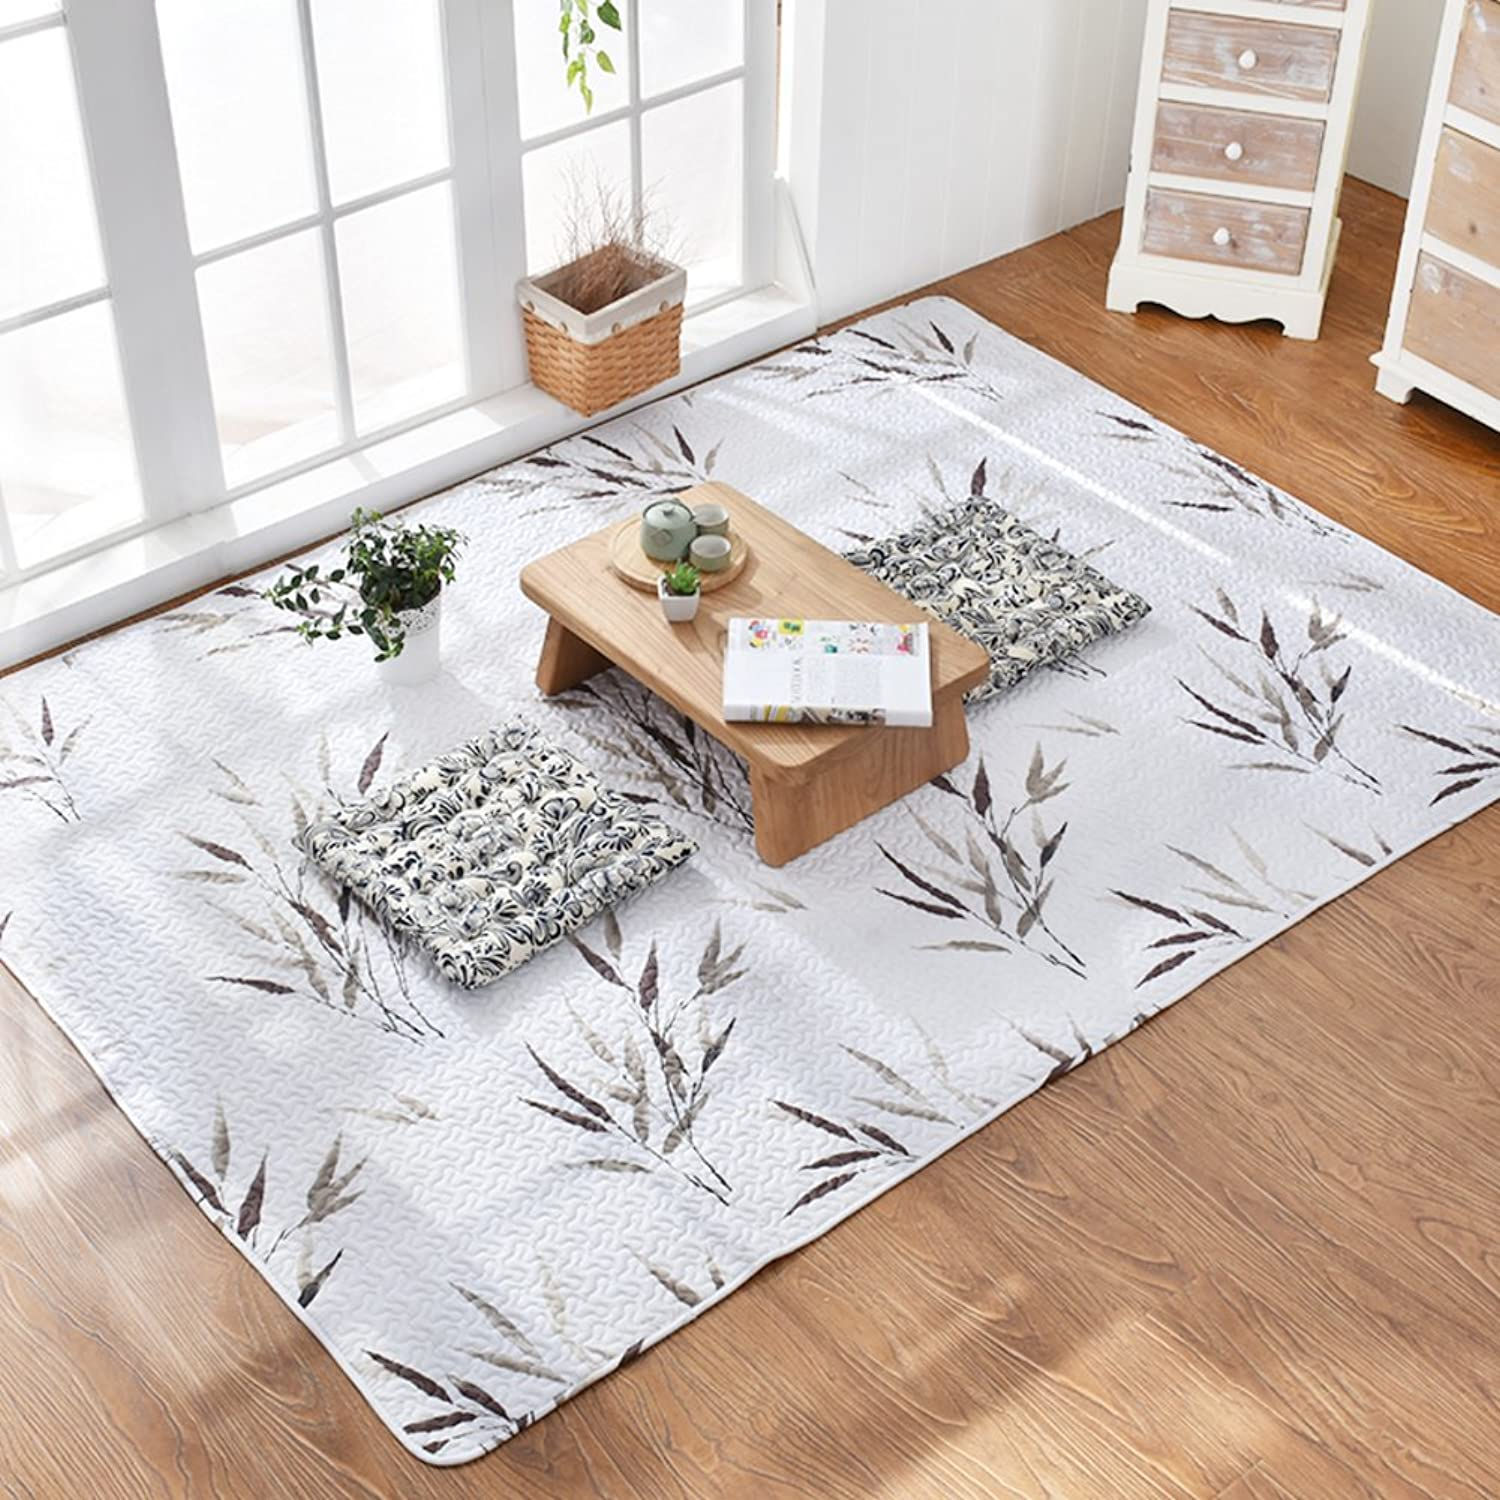 Cotton Mats for Household Use Bedroom Bedside Mats Doormat-B 150x210cm(59x83inch)